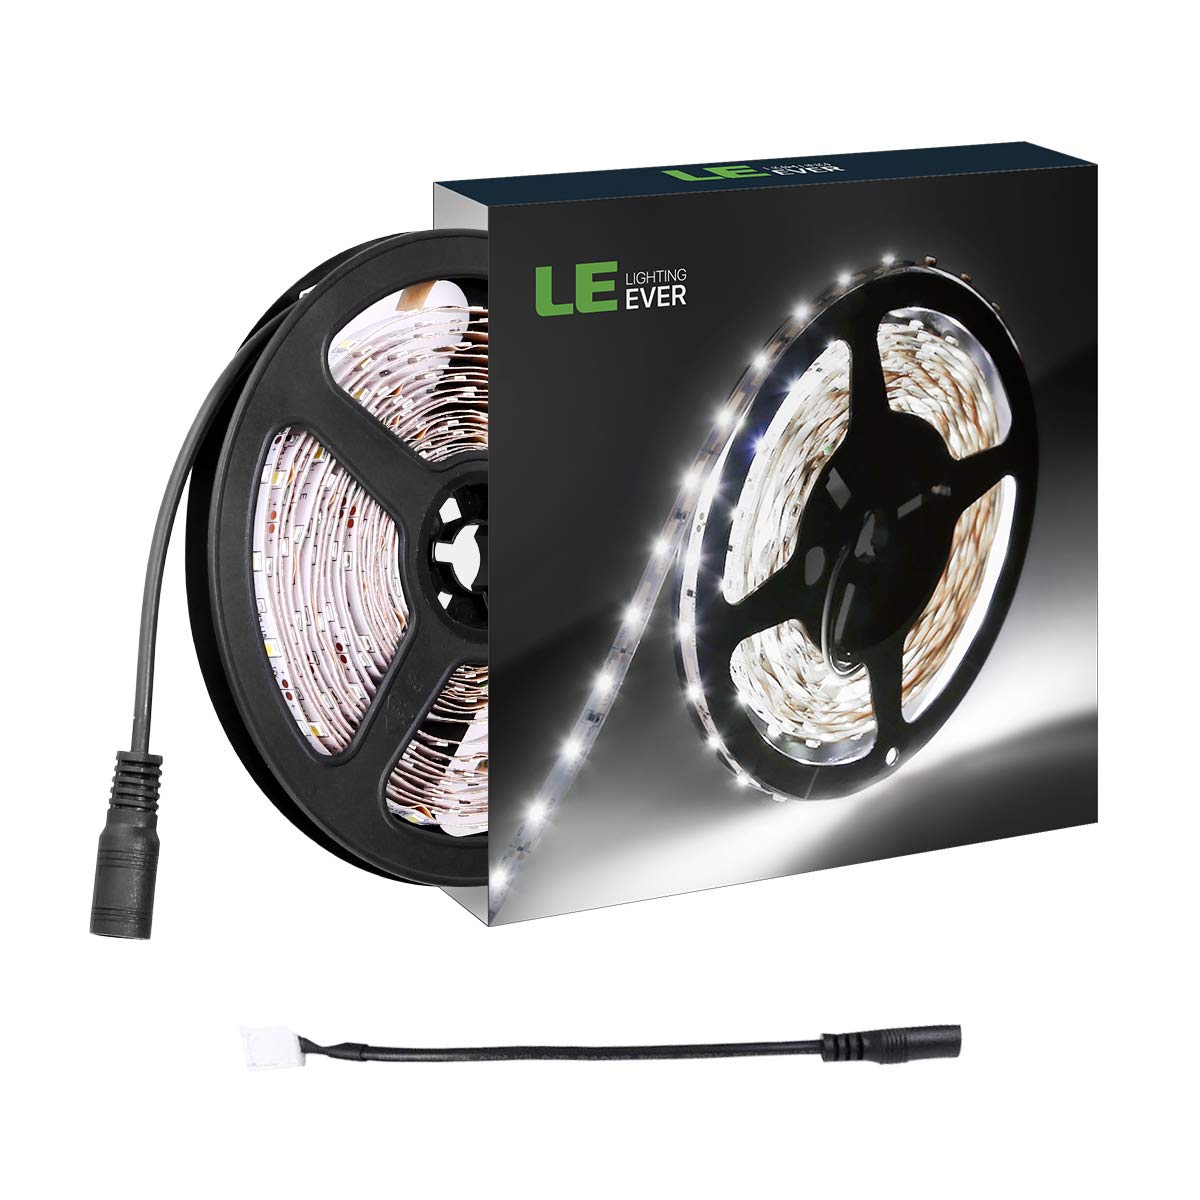 Le 12v Led Strip Light Flexible Smd 2835 164ft Tape For Ac Wiring Diagram Christmas Lights Home Kitchen Party And More Non Waterproof Daylight White